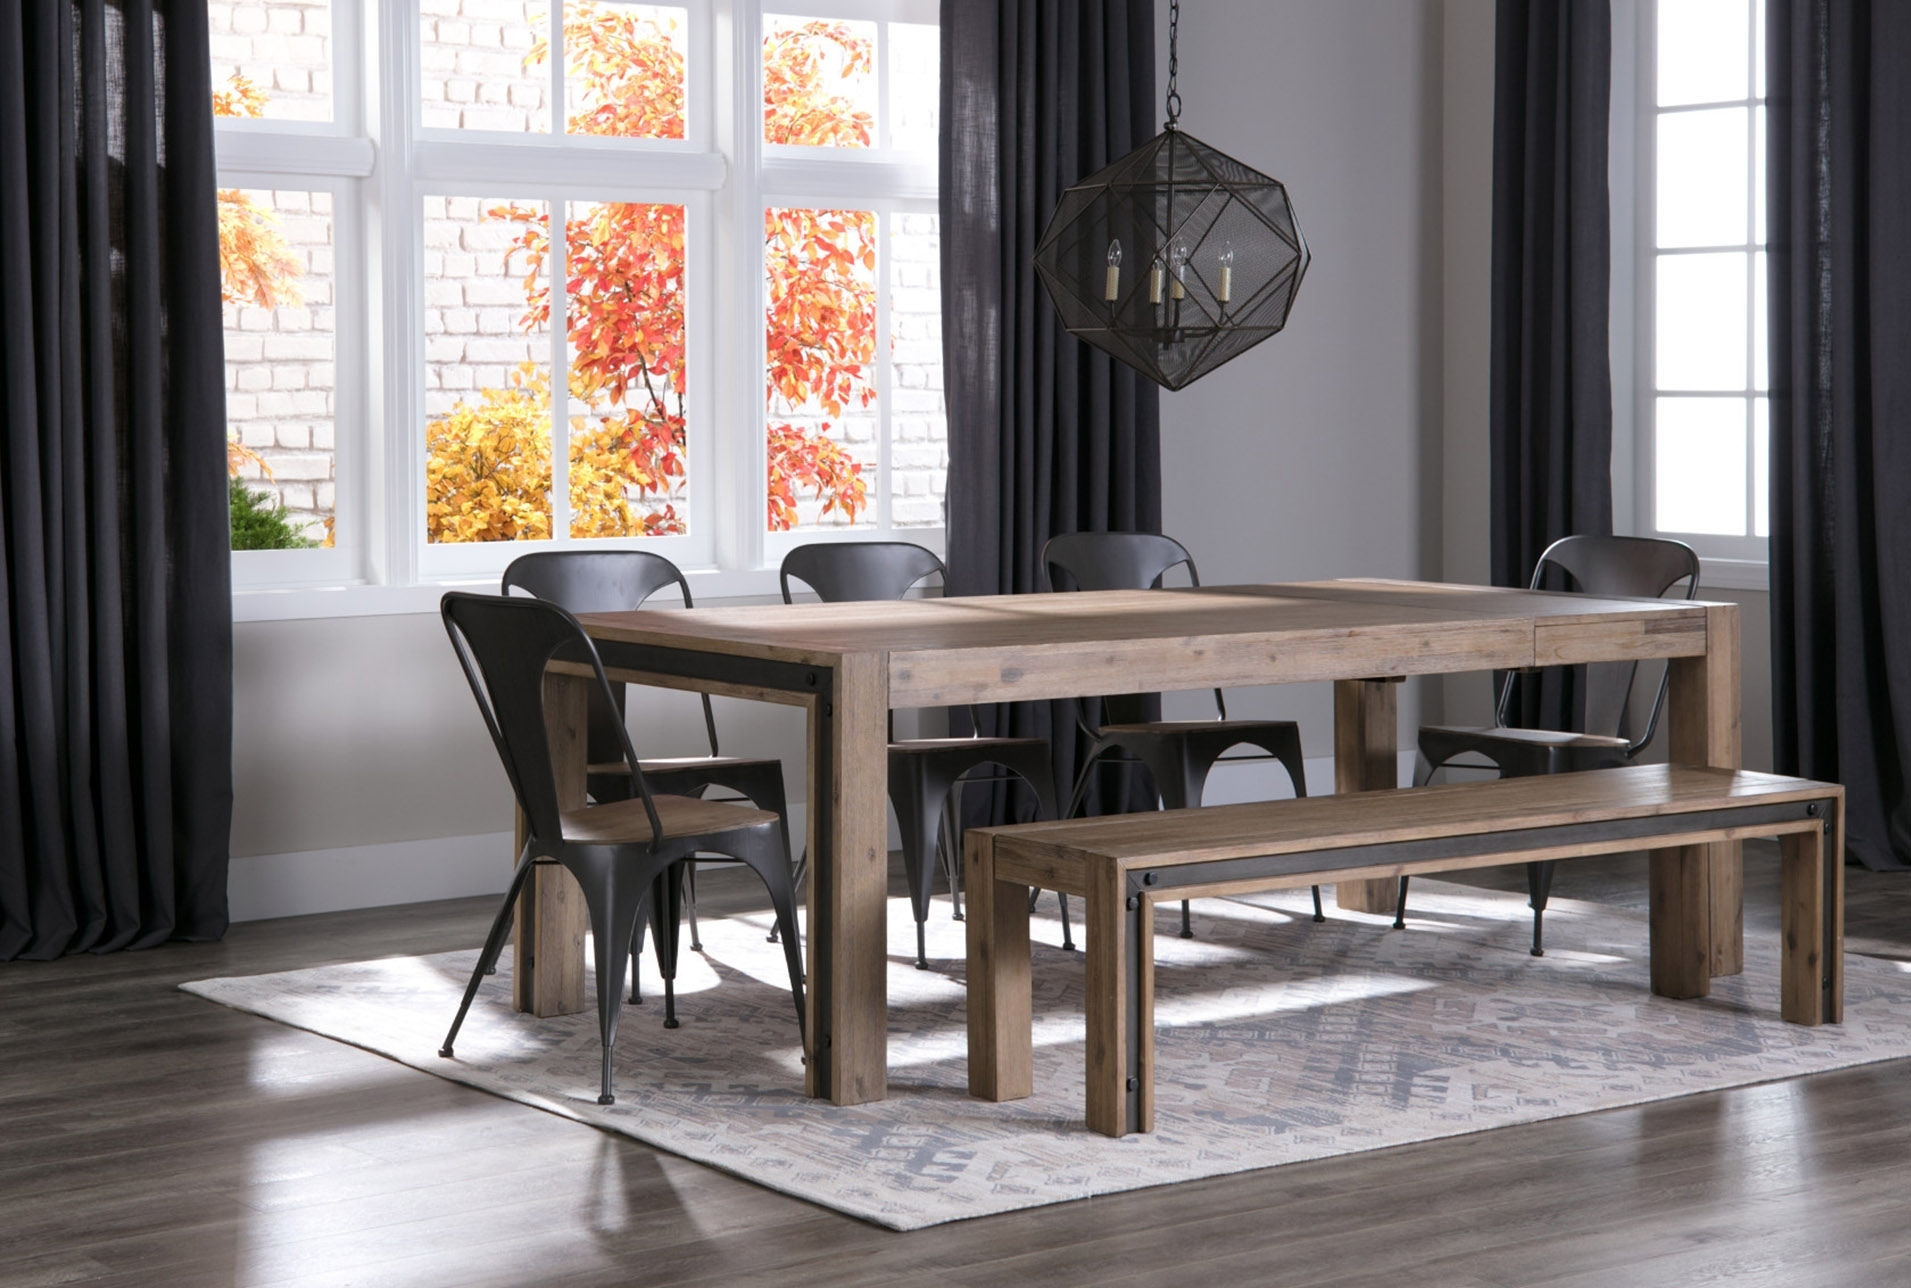 Amos Bench | Products | Pinterest | Products Within Most Up To Date Amos 6 Piece Extension Dining Sets (Image 7 of 20)